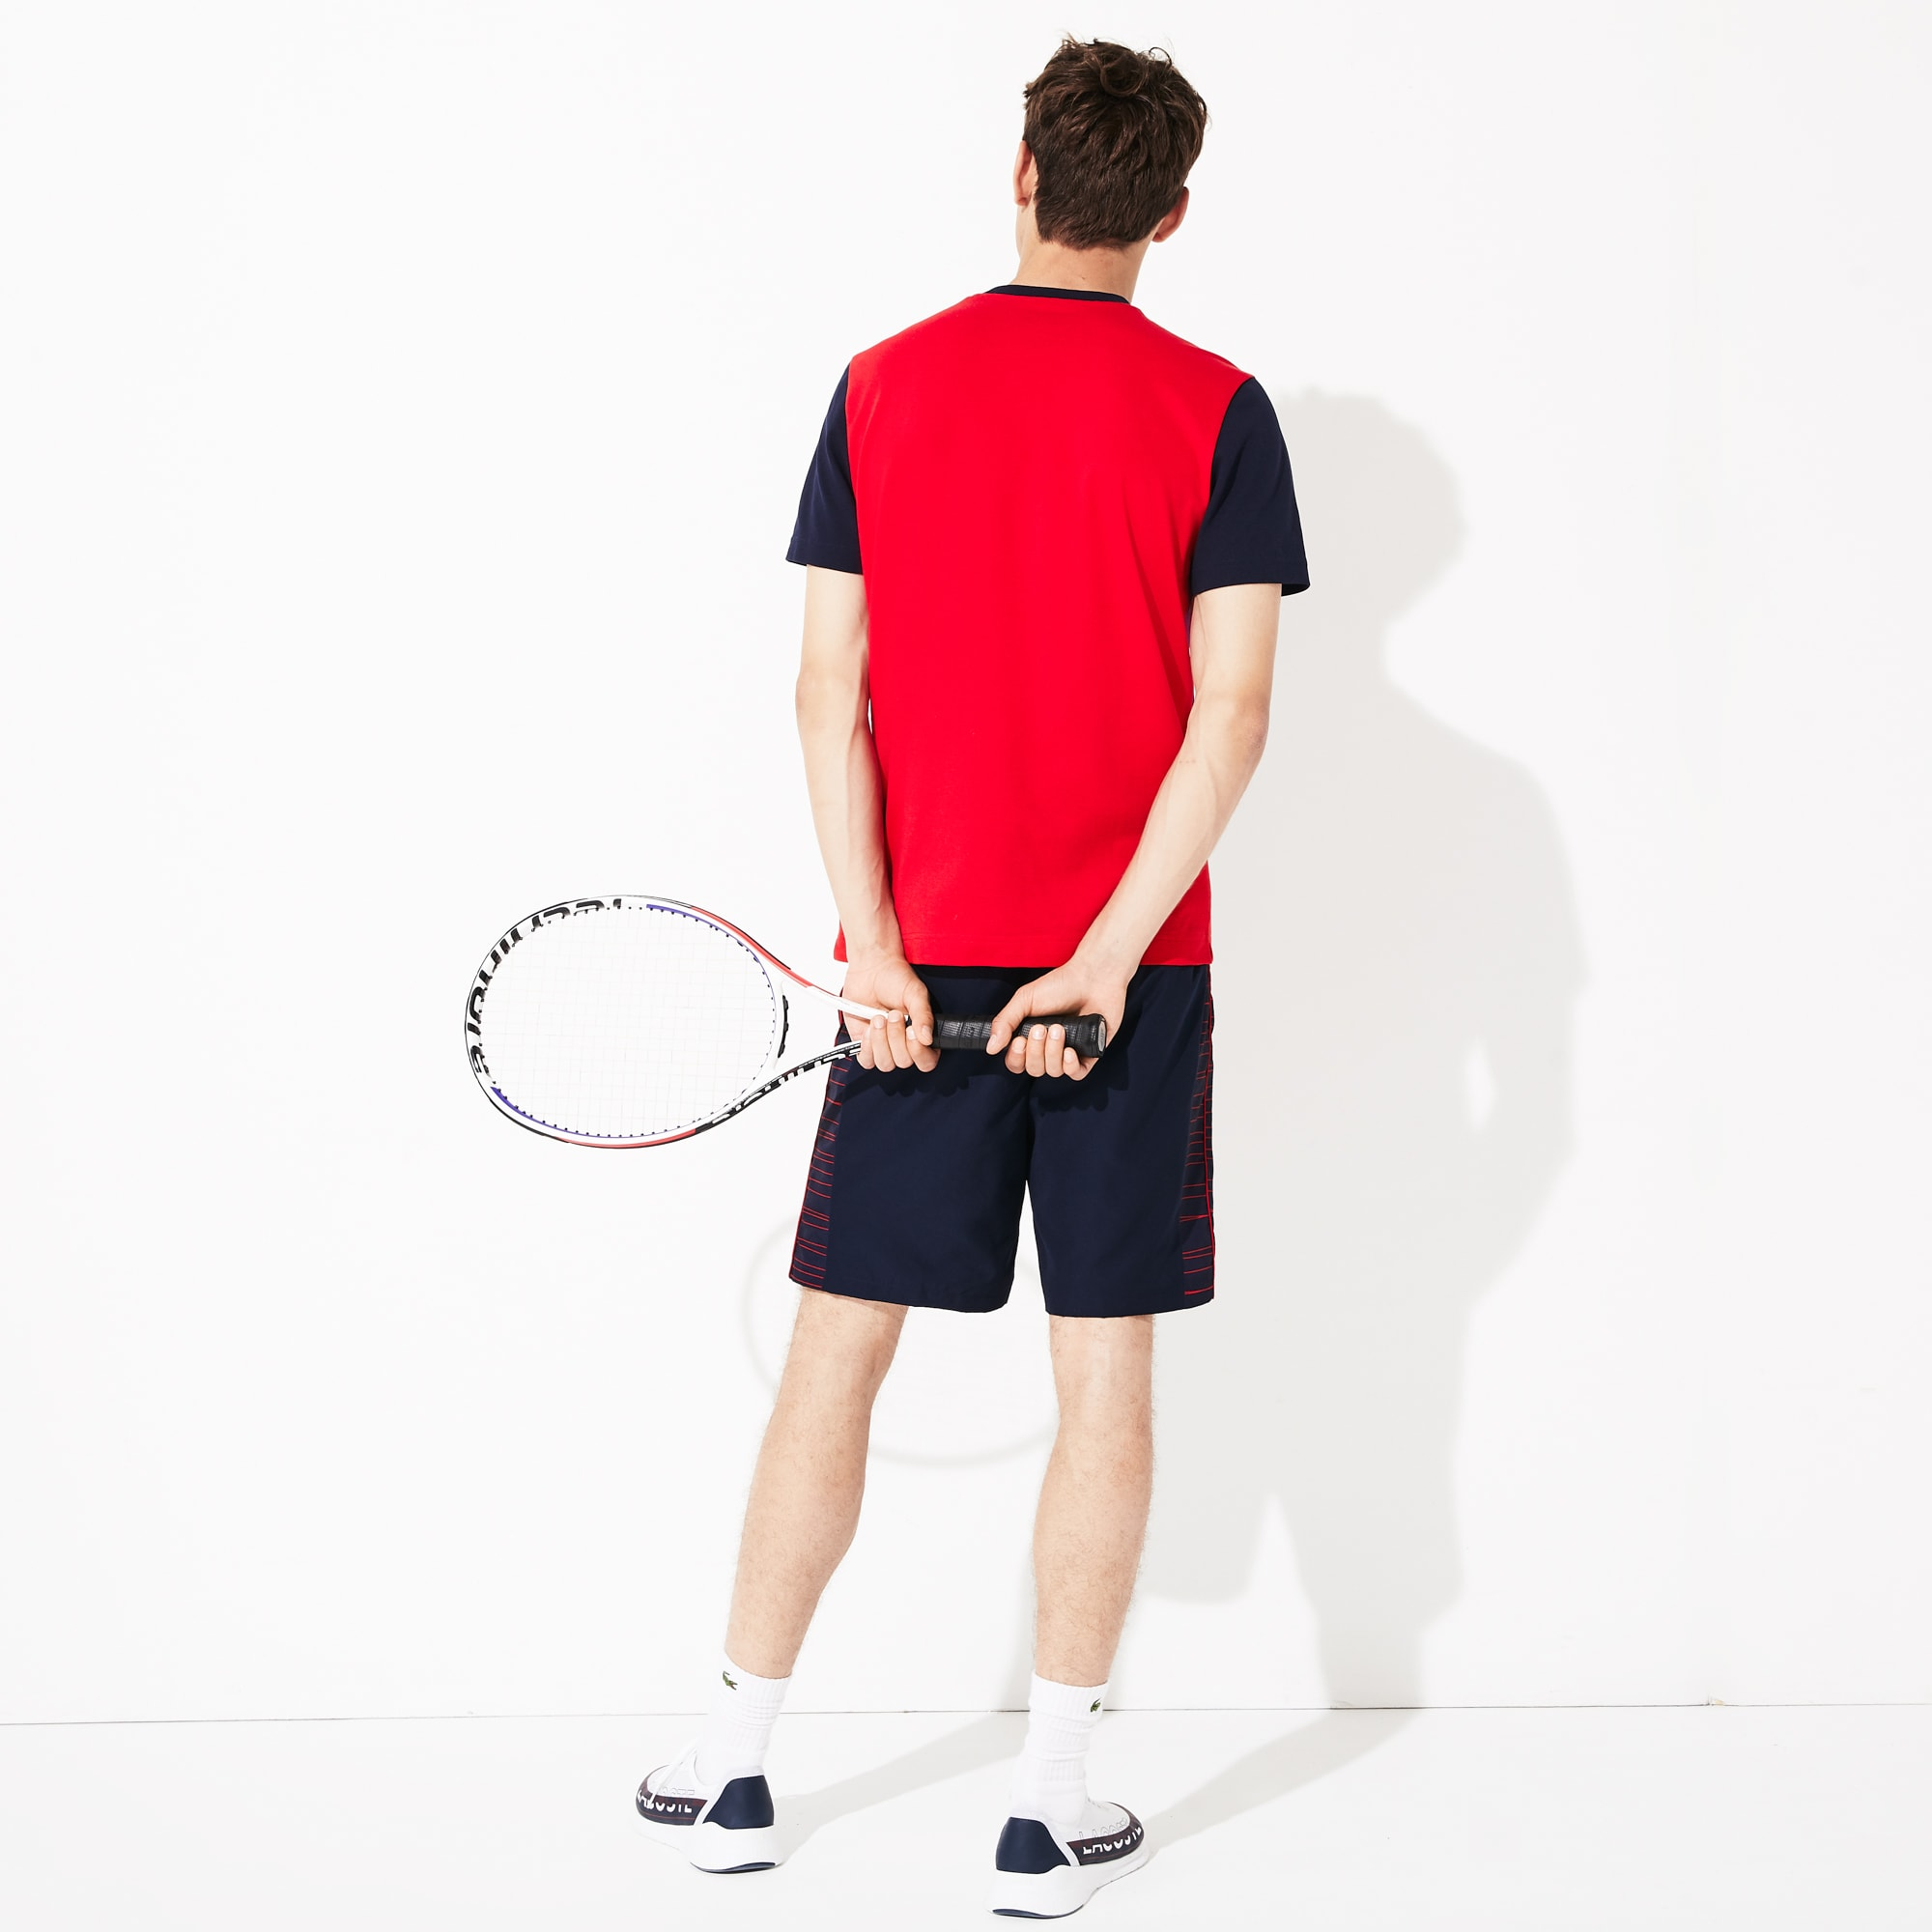 Men's Lacoste SPORT Ultra-Light Colourblock Cotton Tennis T-shirt